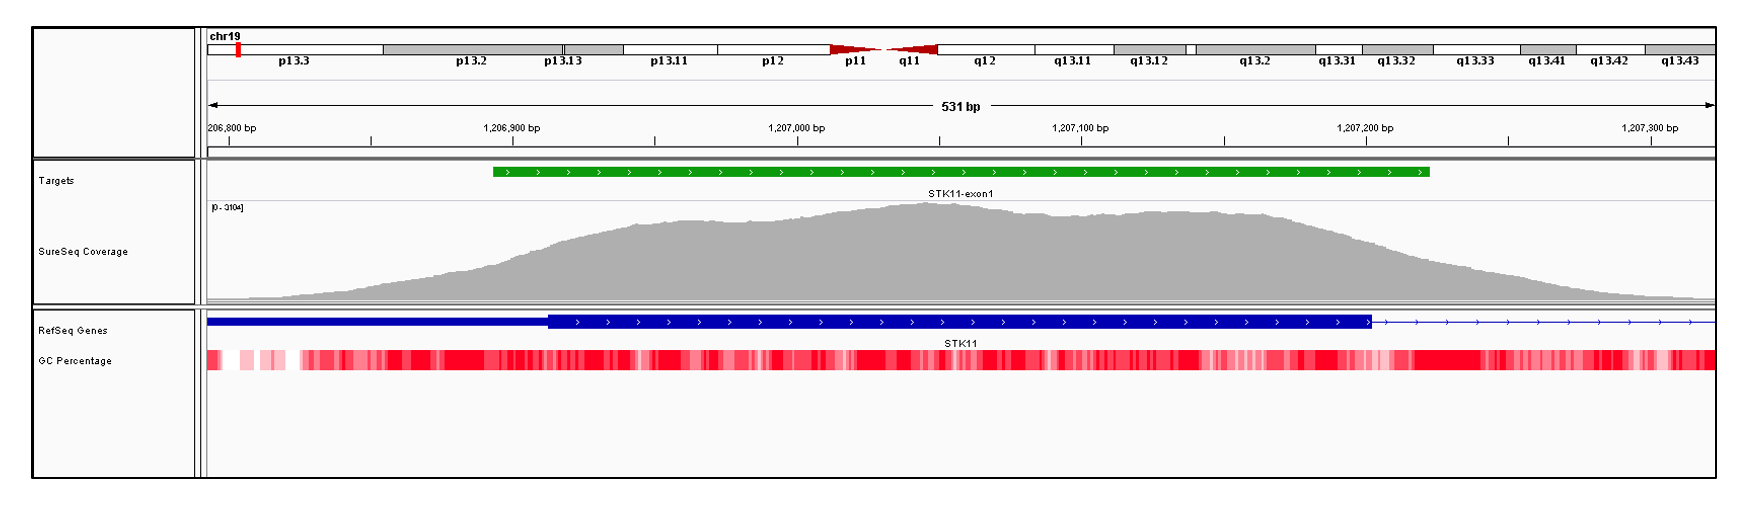 STK11 Exon 1 (hg19 chr19:1205798-1207202). Depth of coverage per base (grey). Targeted region (green). Gene coding region as defined by RefSeq (blue). GC percentage (red). Image